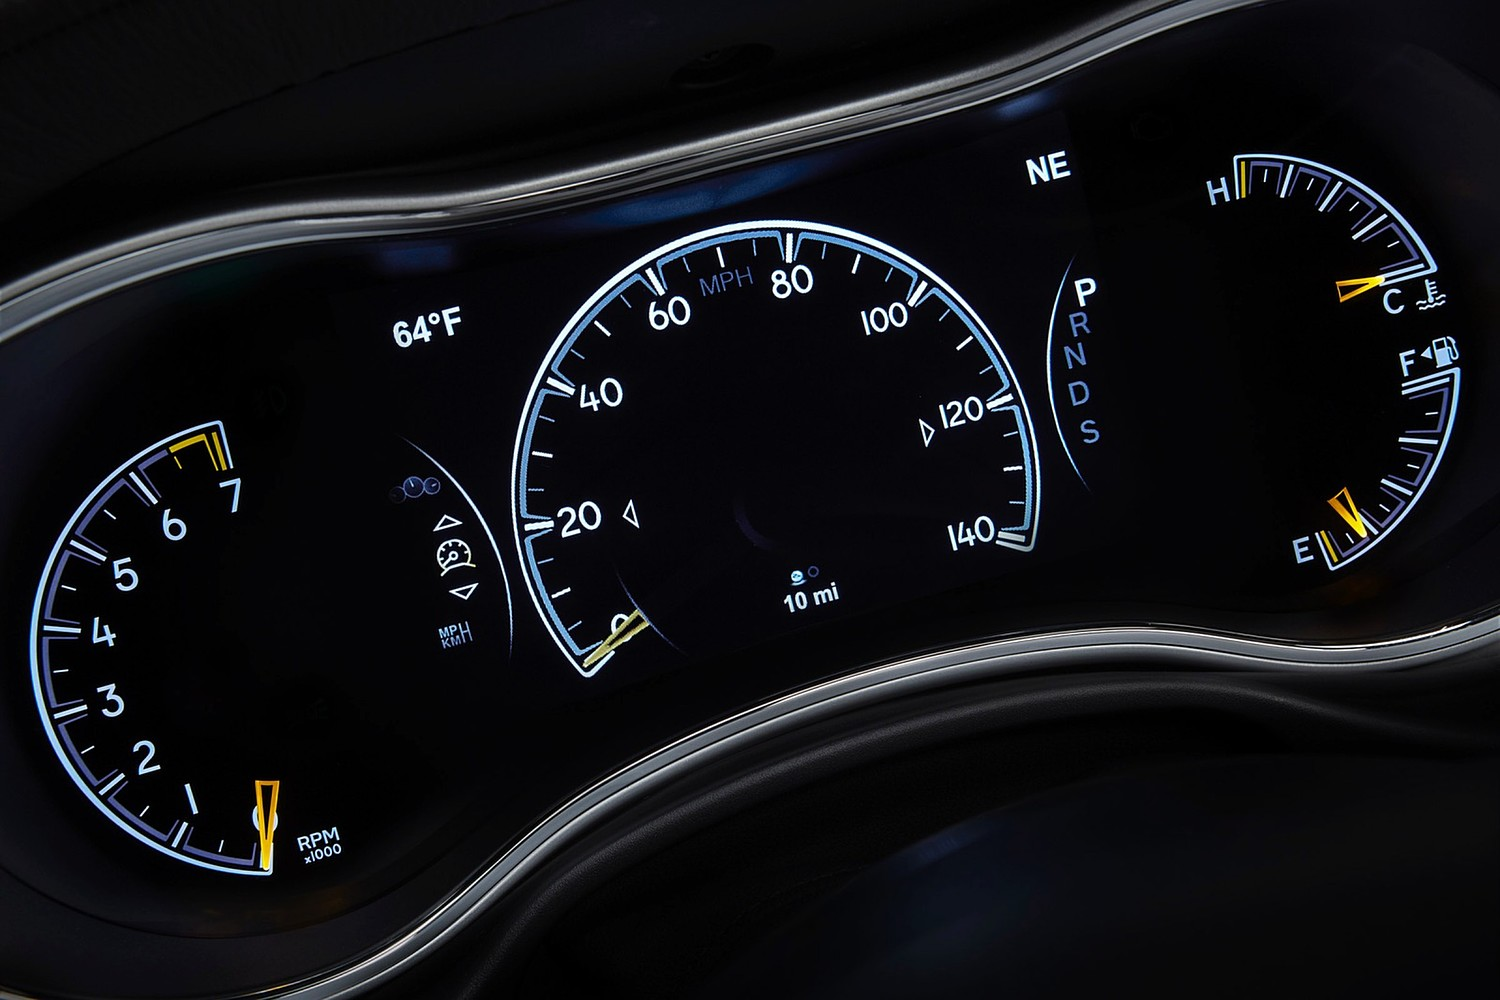 Jeep Grand Cherokee Limited 4dr SUV Gauge Cluster (2015 model year shown)